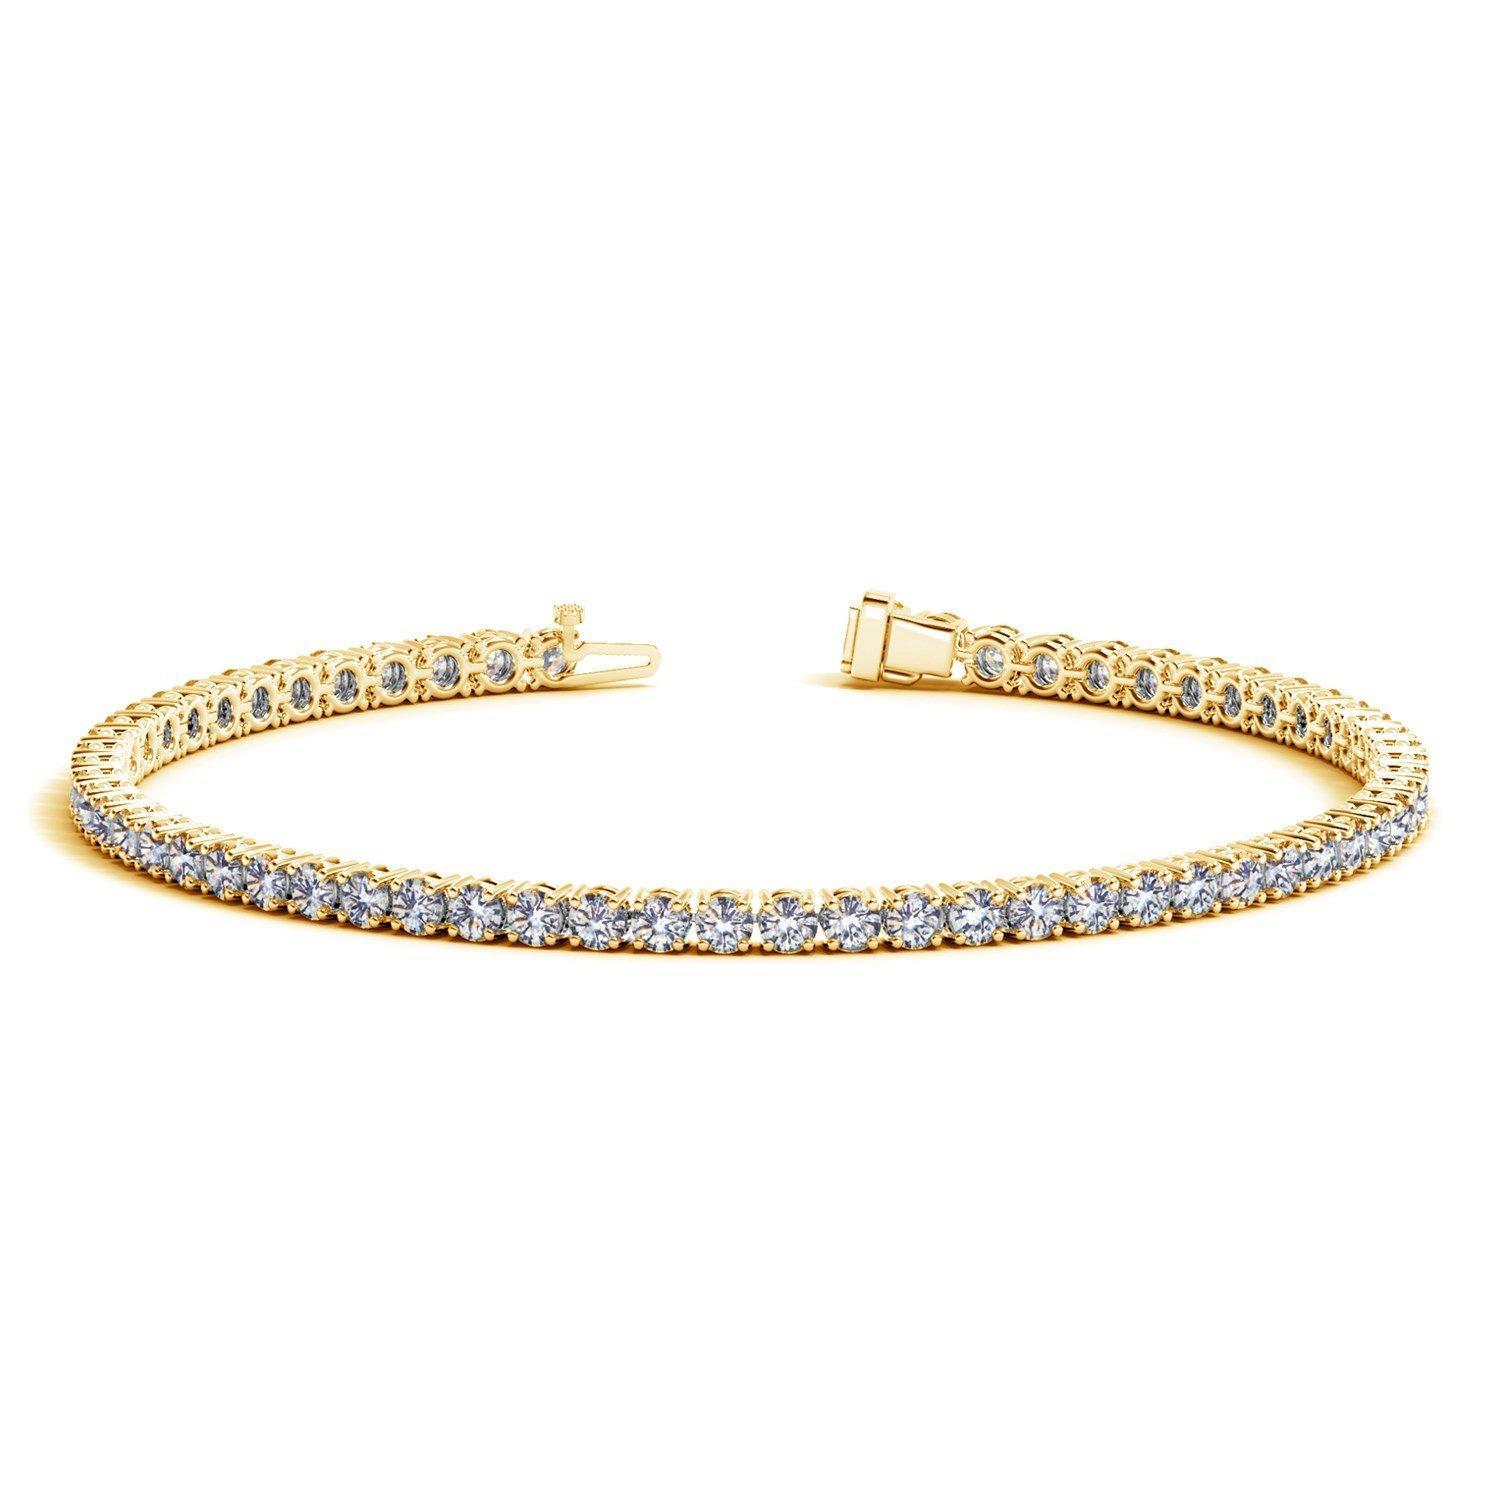 Unique 14K Yellow Gold (5 ct. tw.) Round Diamond Tennis Bracelet 7 inches